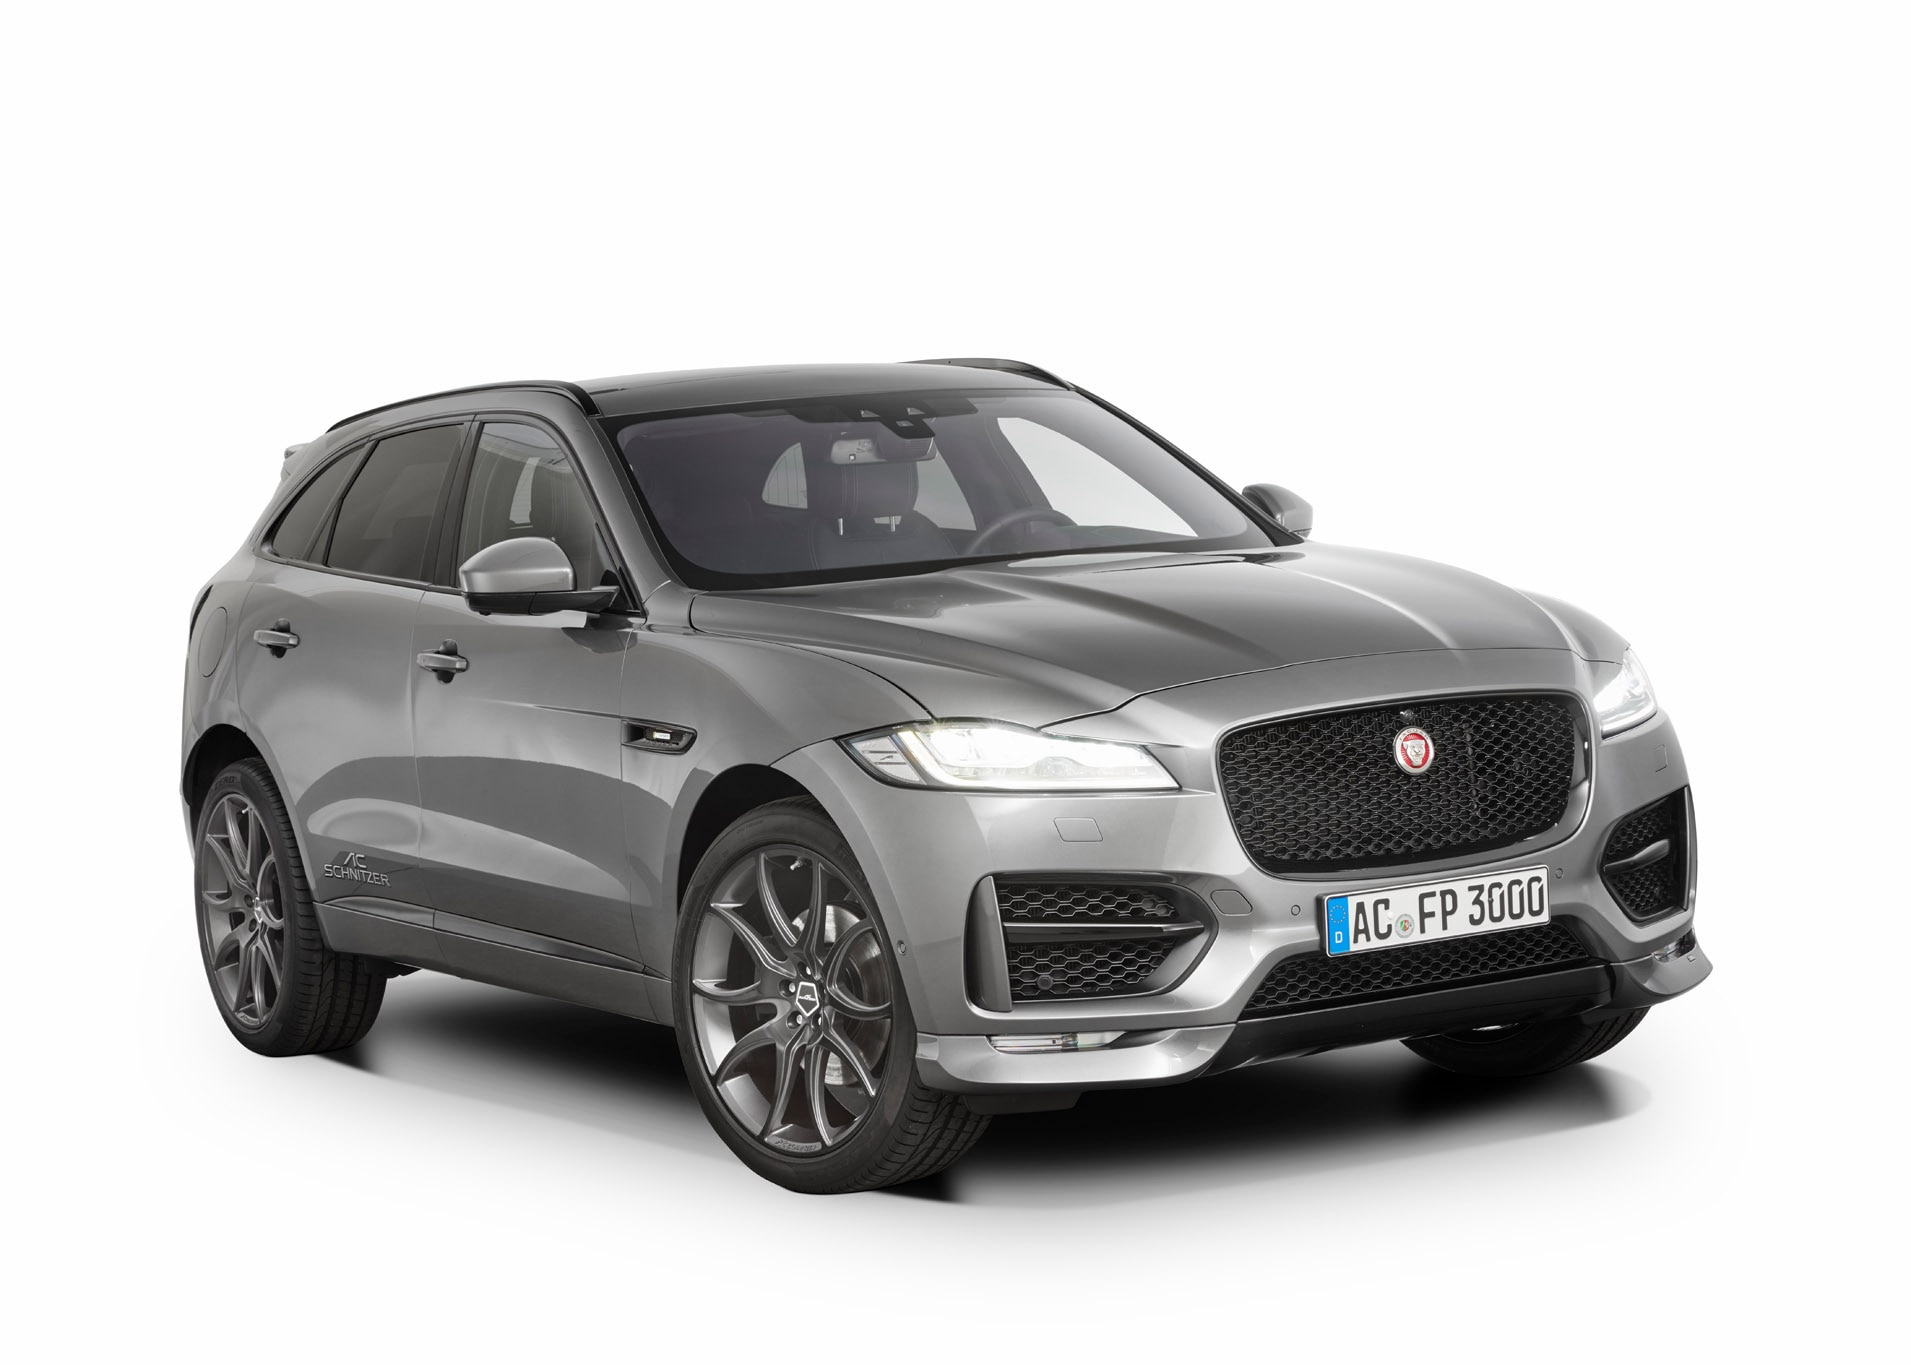 ac schnitzer aftermarket kit gives jaguar f pace extra. Black Bedroom Furniture Sets. Home Design Ideas